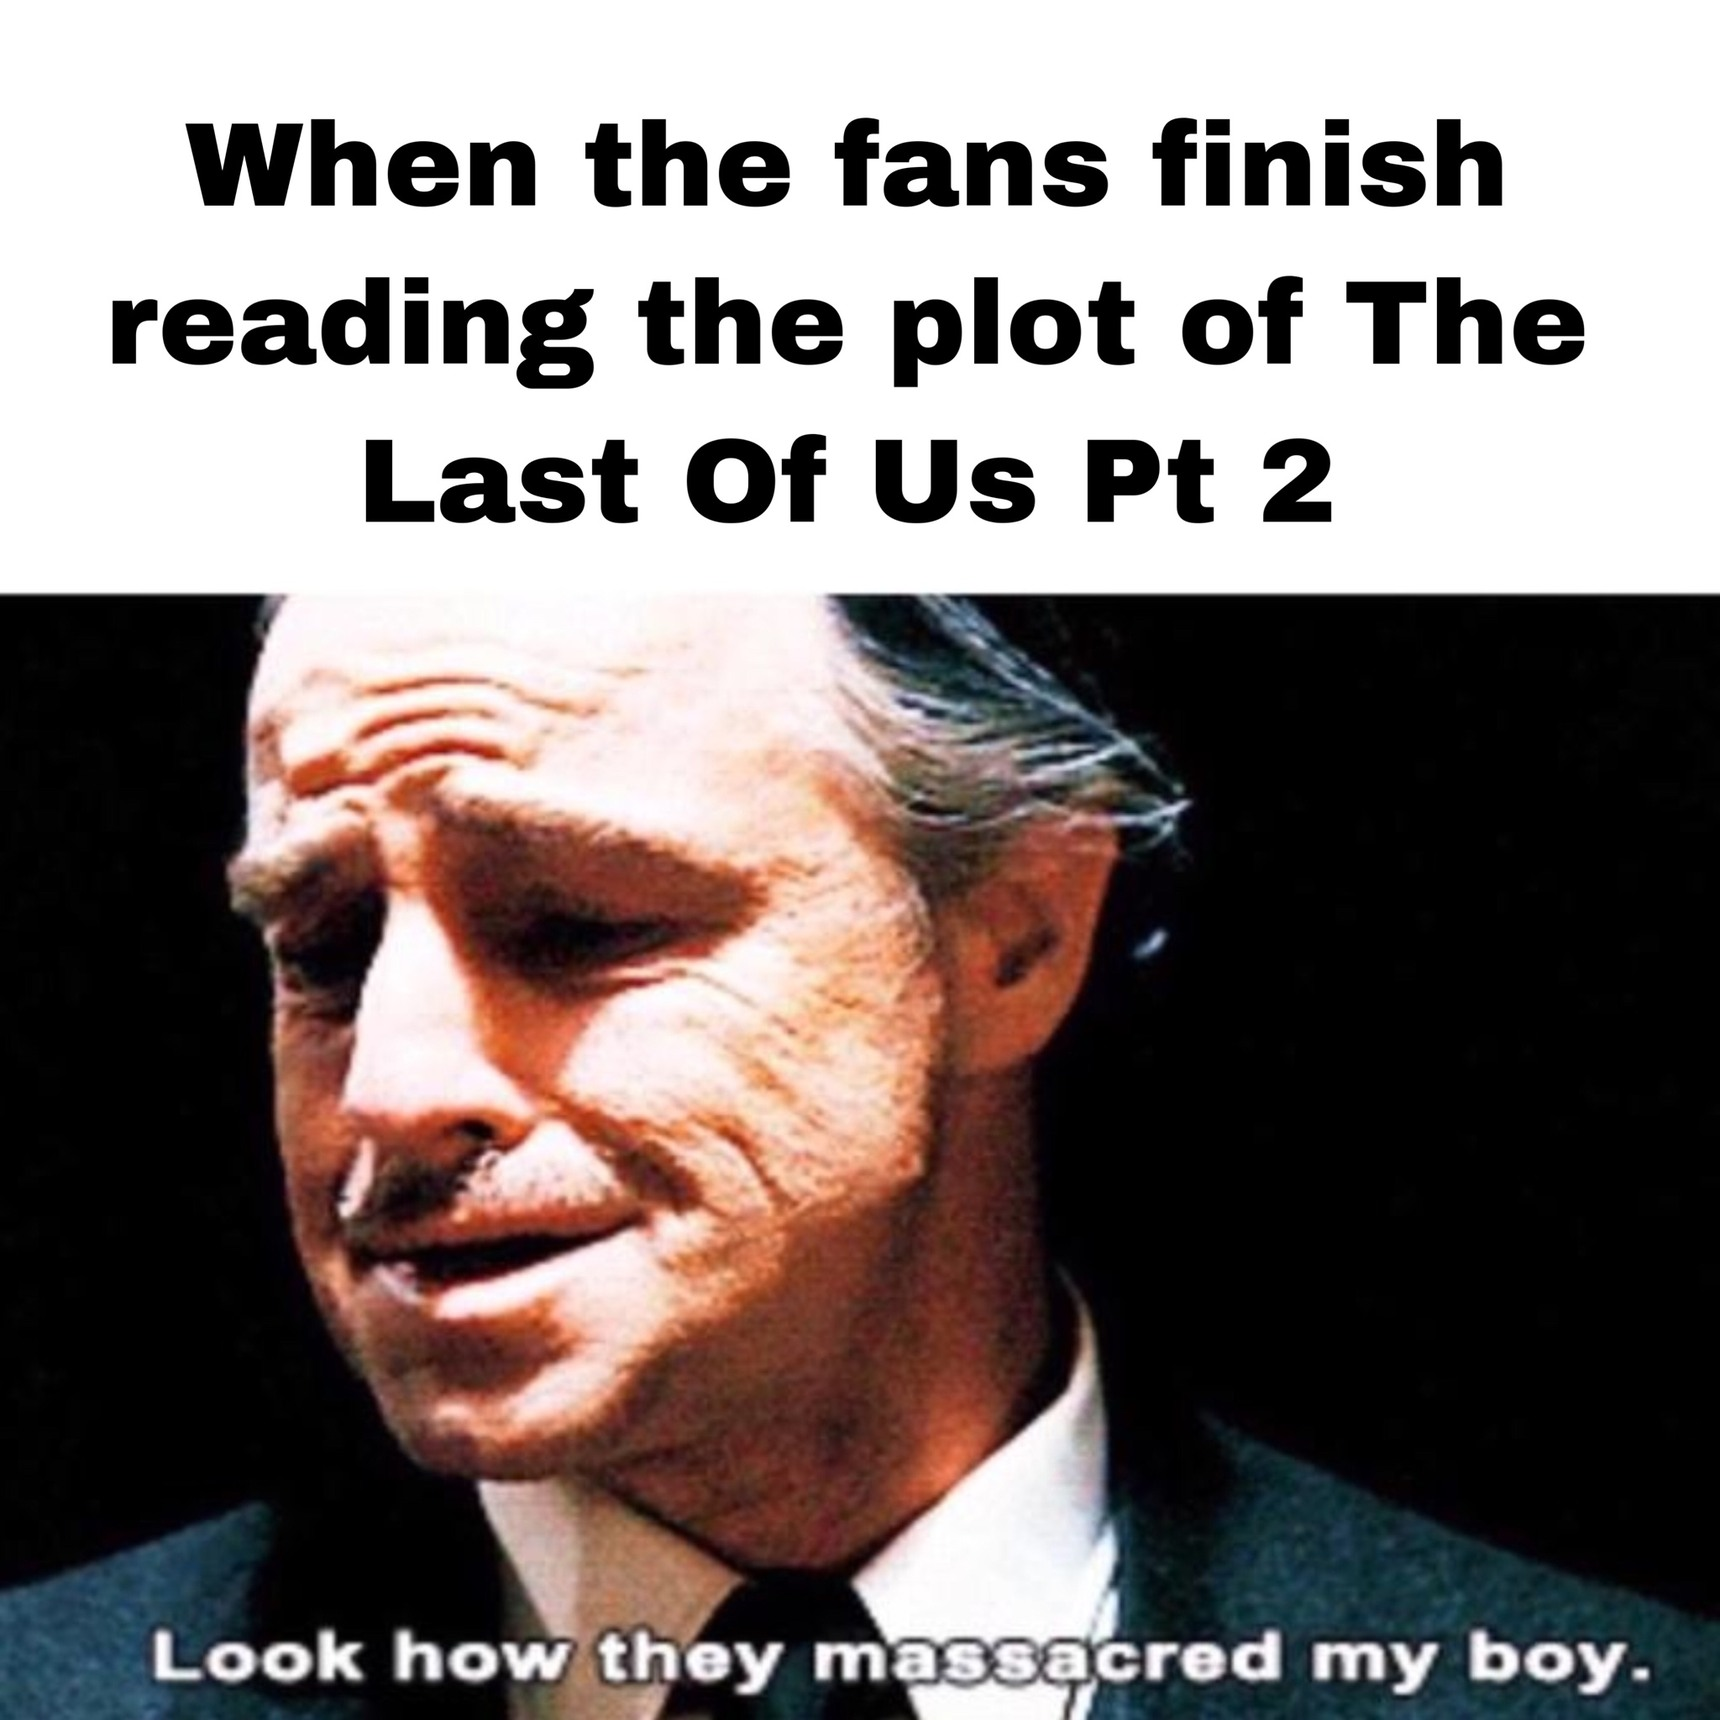 The Last of Crunch pt 2, well done Naughty Dog - meme